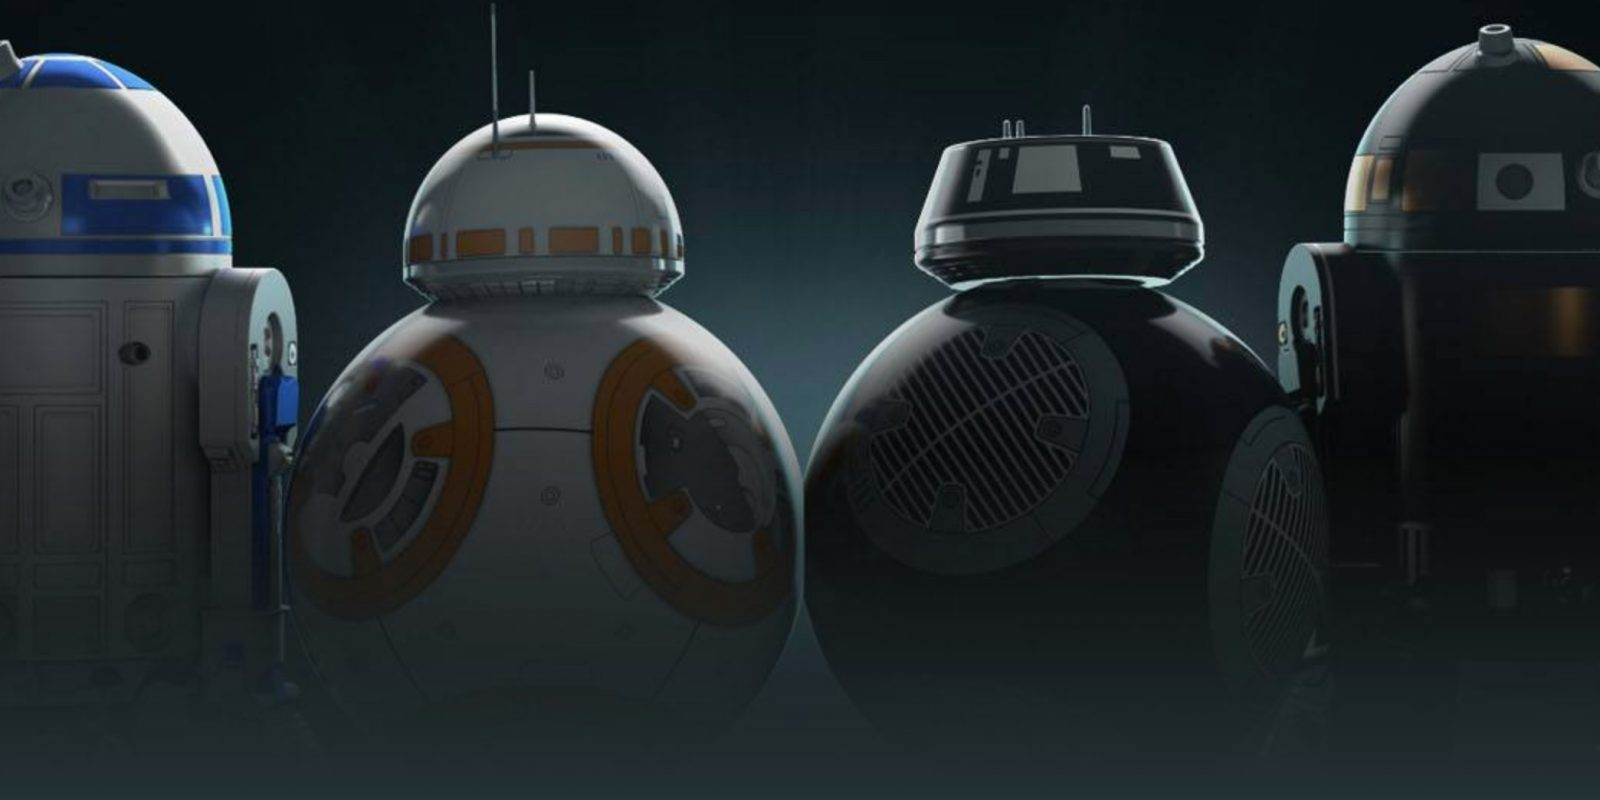 Save On Sphero Iphone Enabled Star Wars Toys With Deals From 80 Bb8 Special Edition Bundle By App Droid Shipped